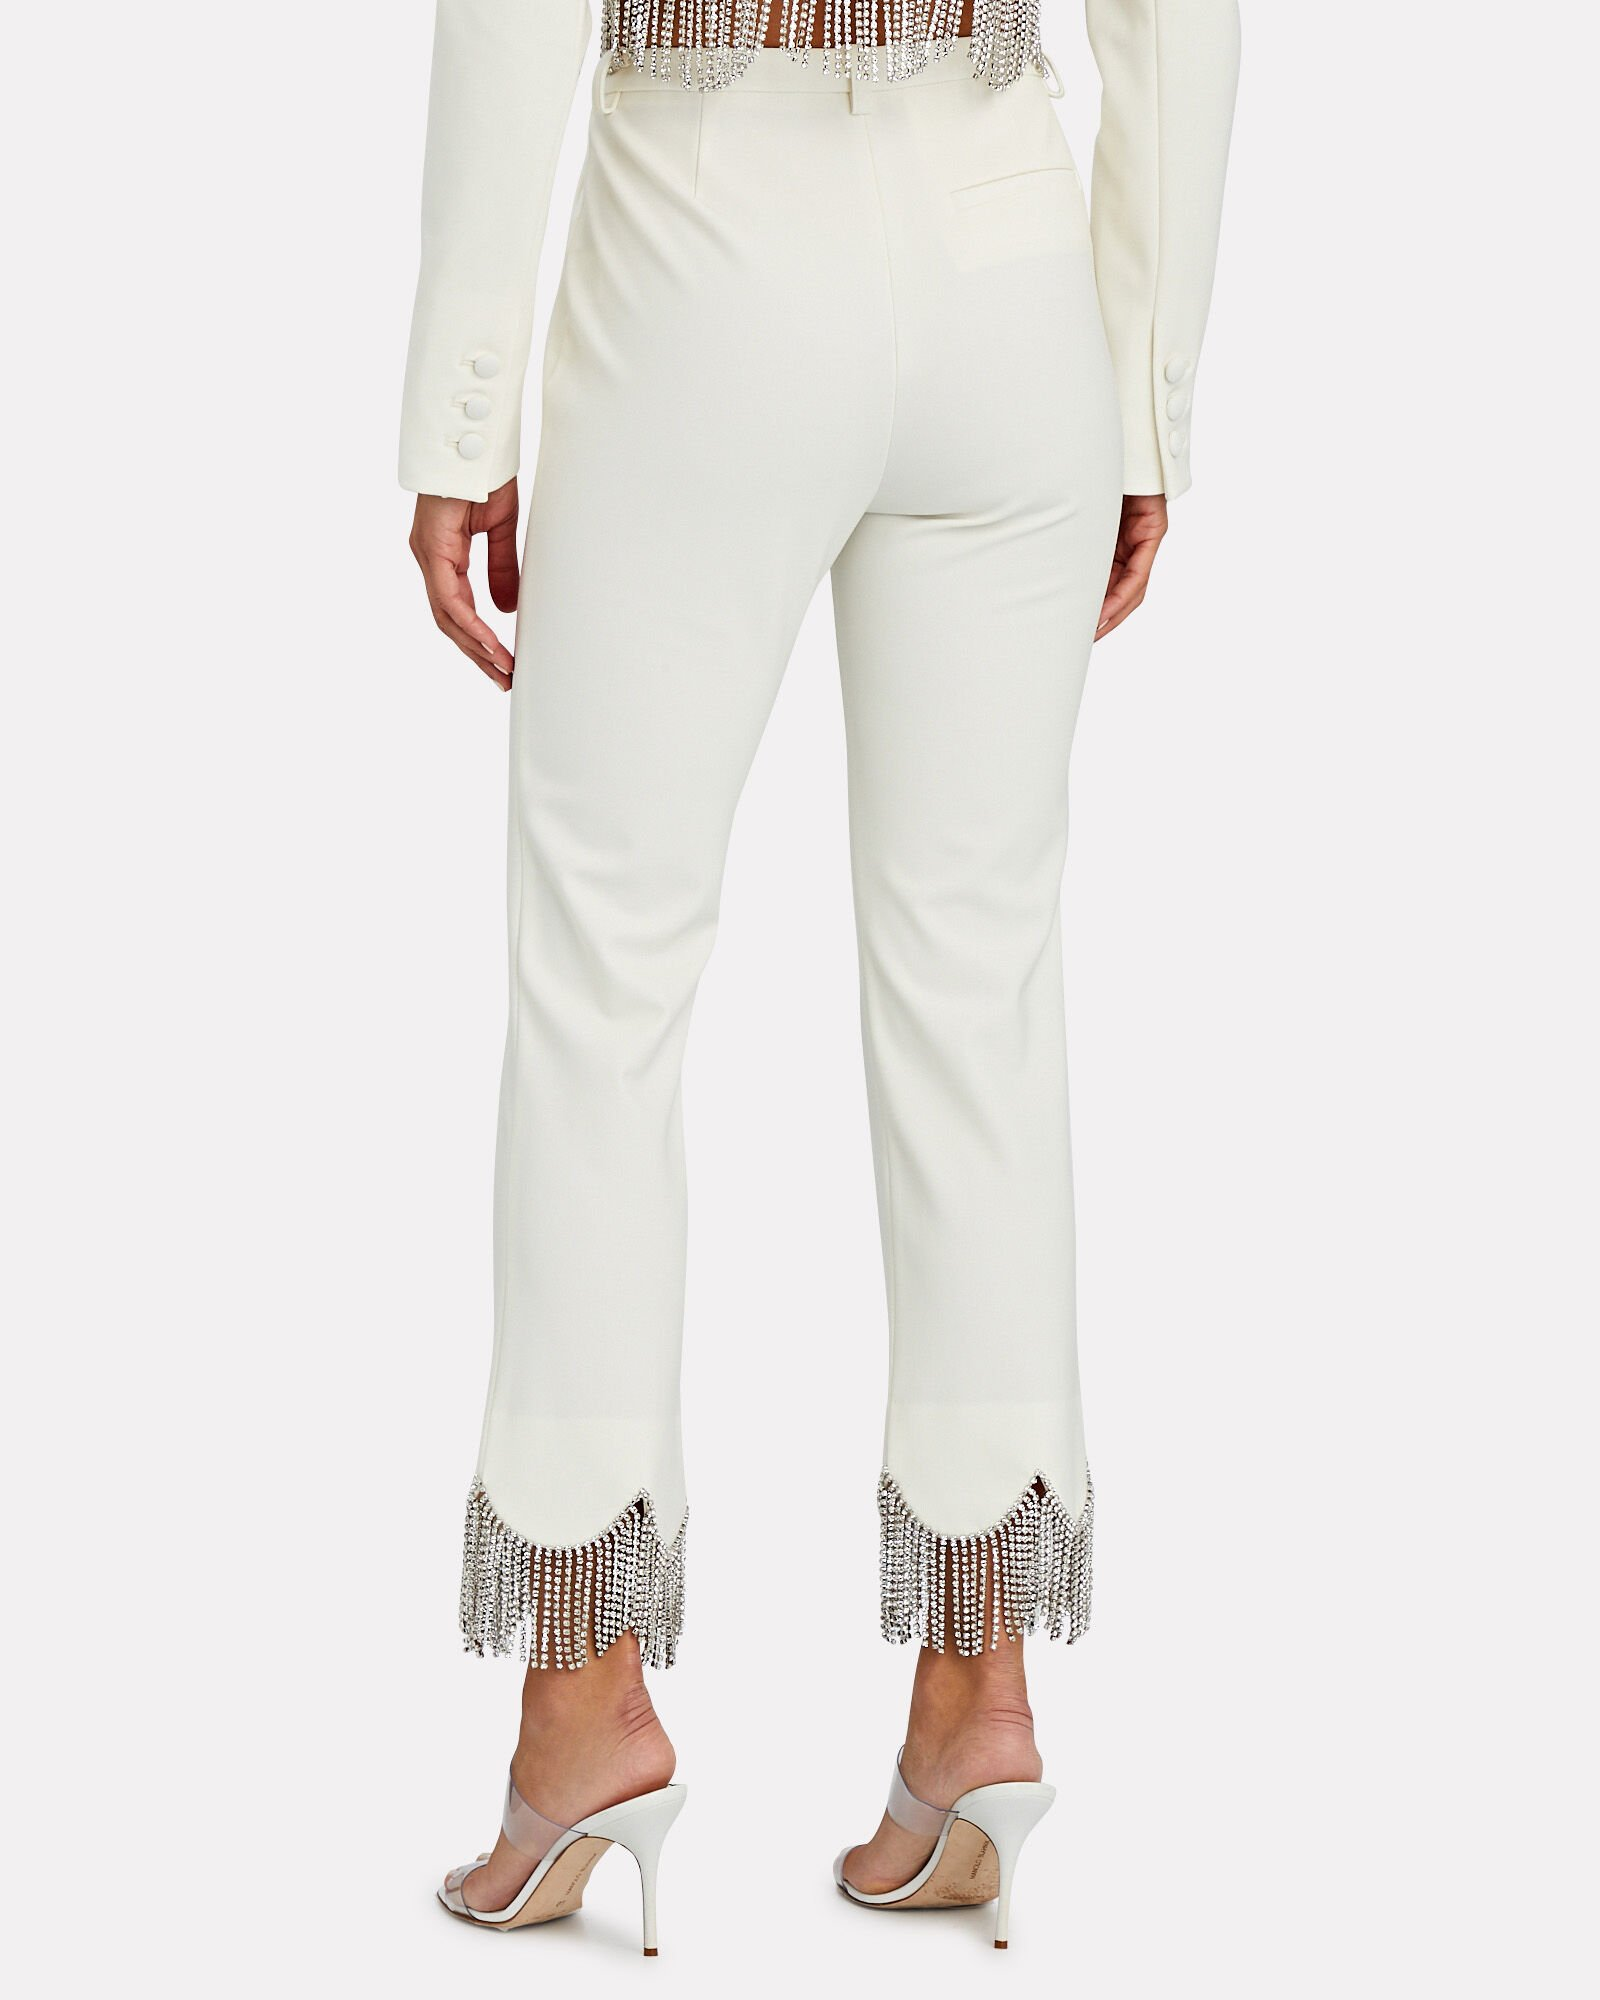 Crystal Fringed Cigarette Pants, IVORY, hi-res